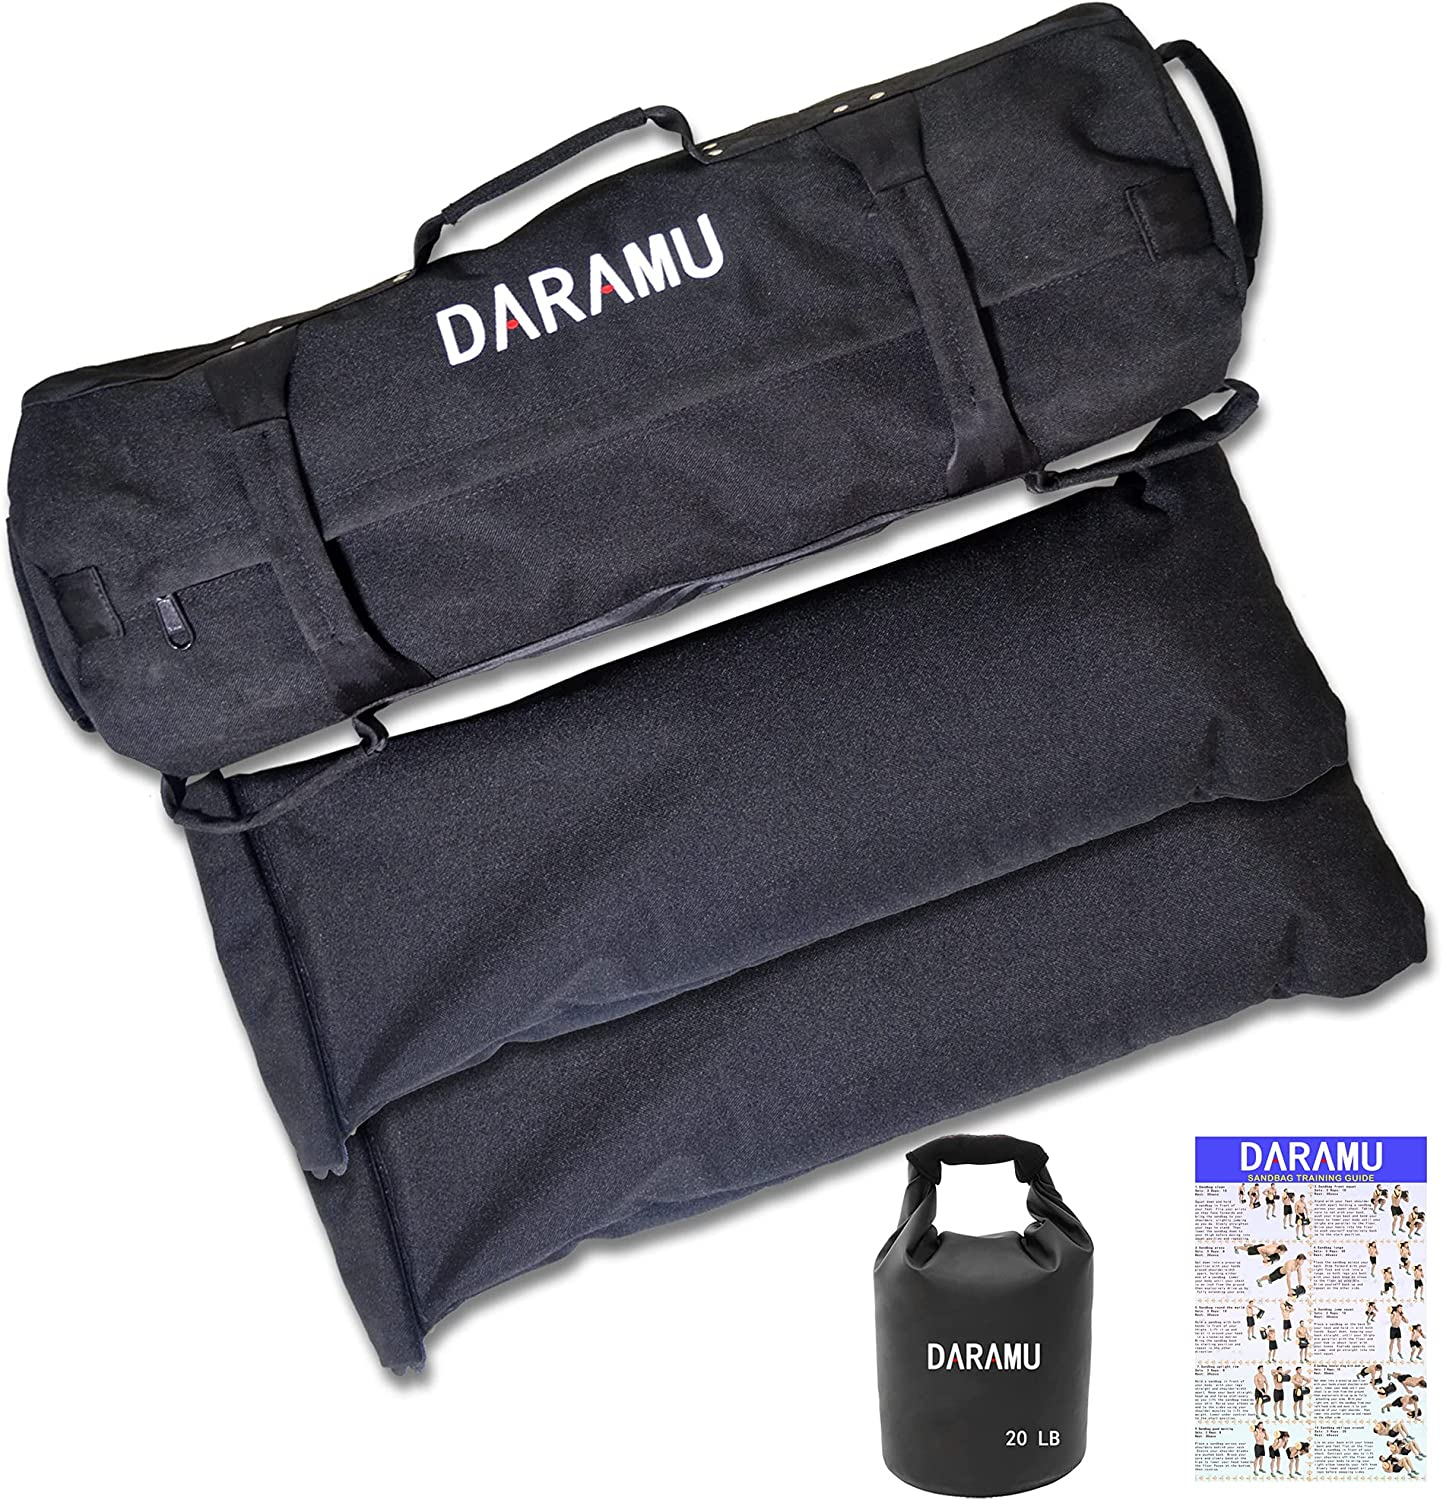 DARAMU Workout Sandbag for Fitness Reinforced Heavy Duty Weight 60LB/120LB Sand Bag, Ideal for Crossfit, Cross-Training, Military Conditioning and Home Gym Exercise